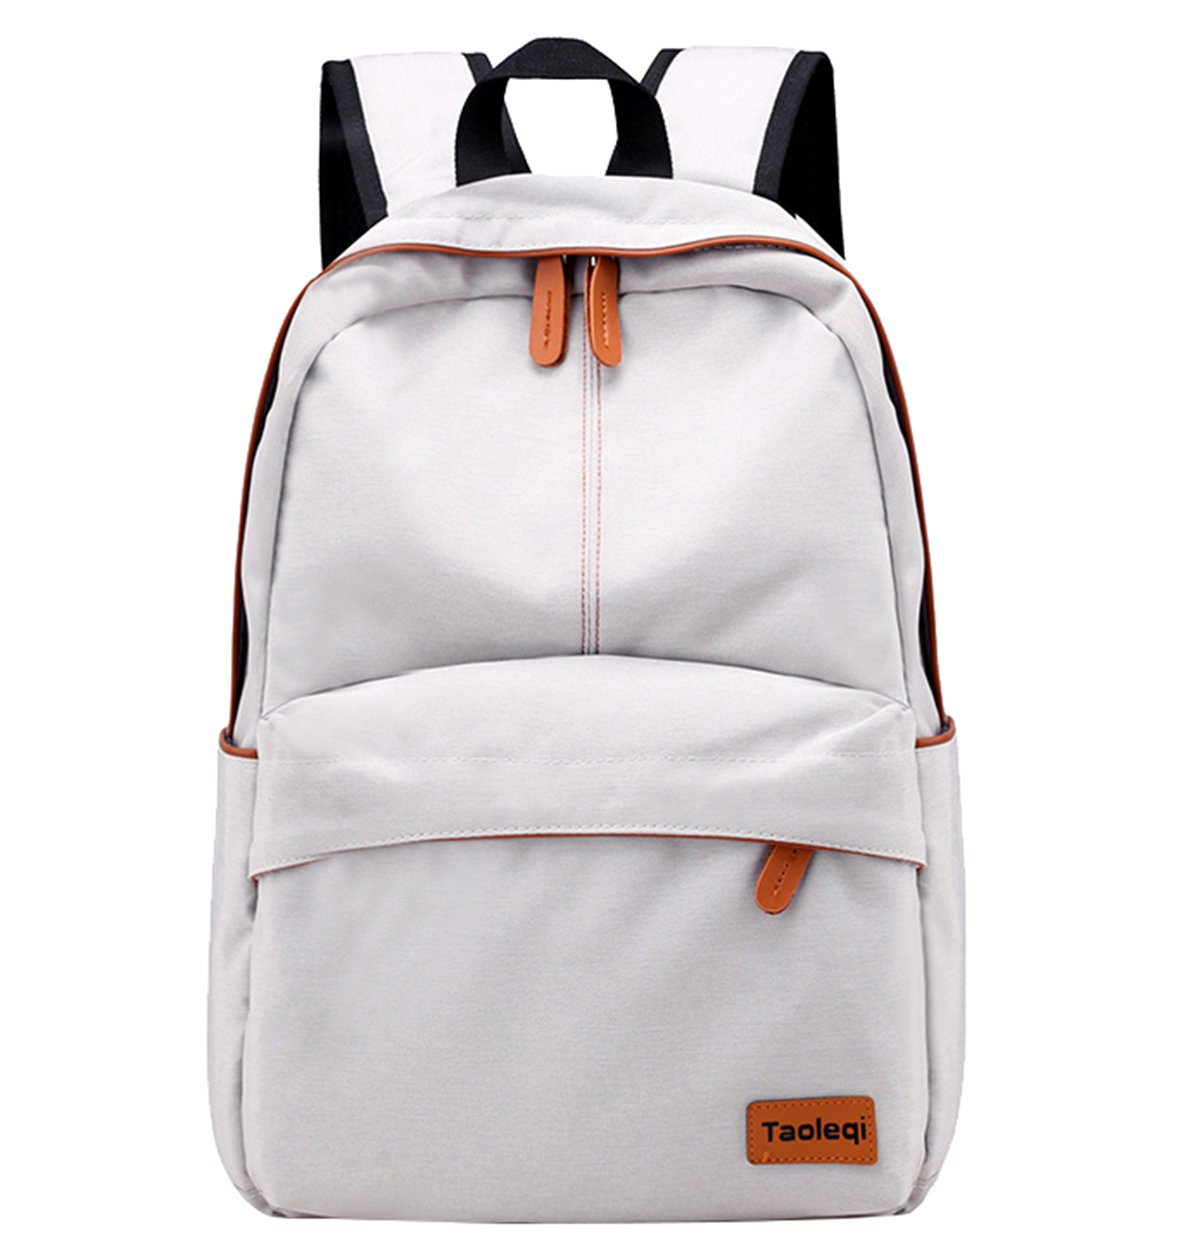 Super Modern Unisex Nylon School Bag Solid Color Backpack Hiking Backpack  with Headphone Hole Cool Sports Backpack Laptop Bag for Womens Girls  Childern 5c7abfad03f29